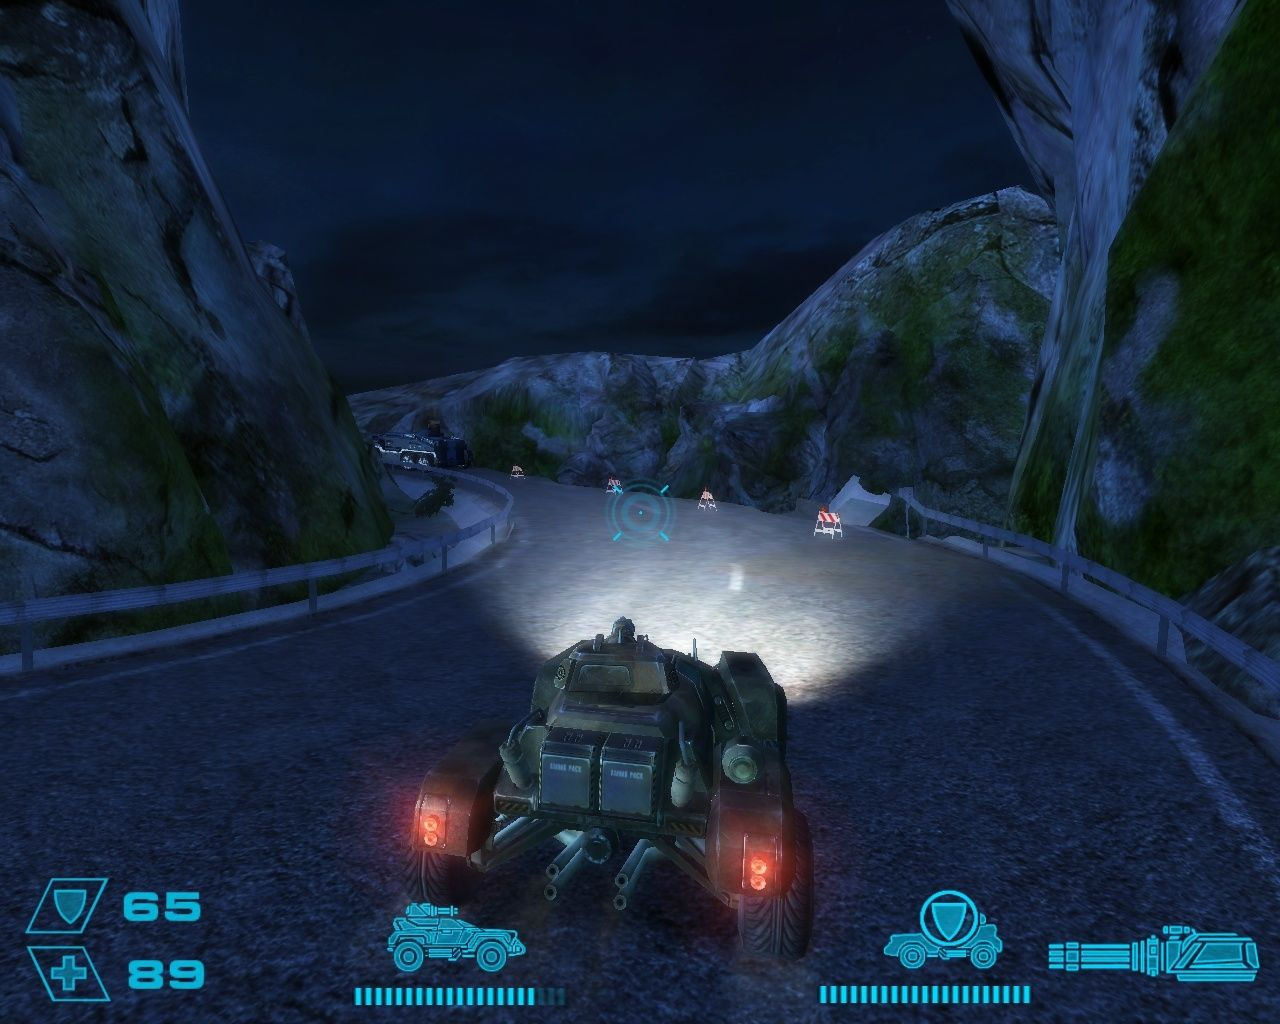 Exodus from the Earth Windows The game features driving sections with an armed vehicle.